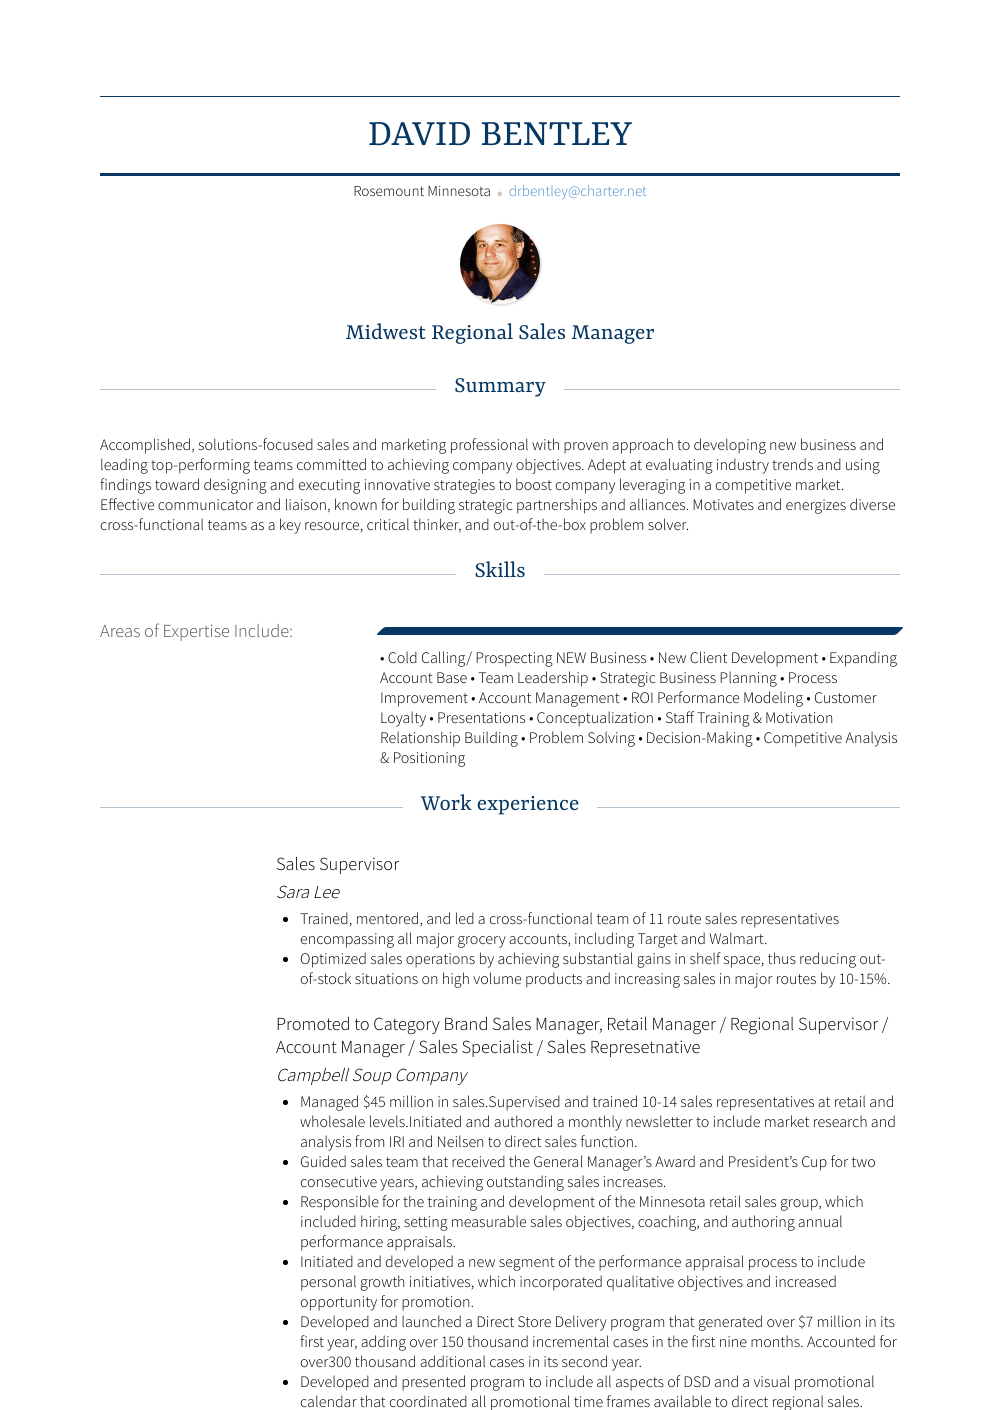 Sales Supervisor - Resume Samples & Templates | VisualCV